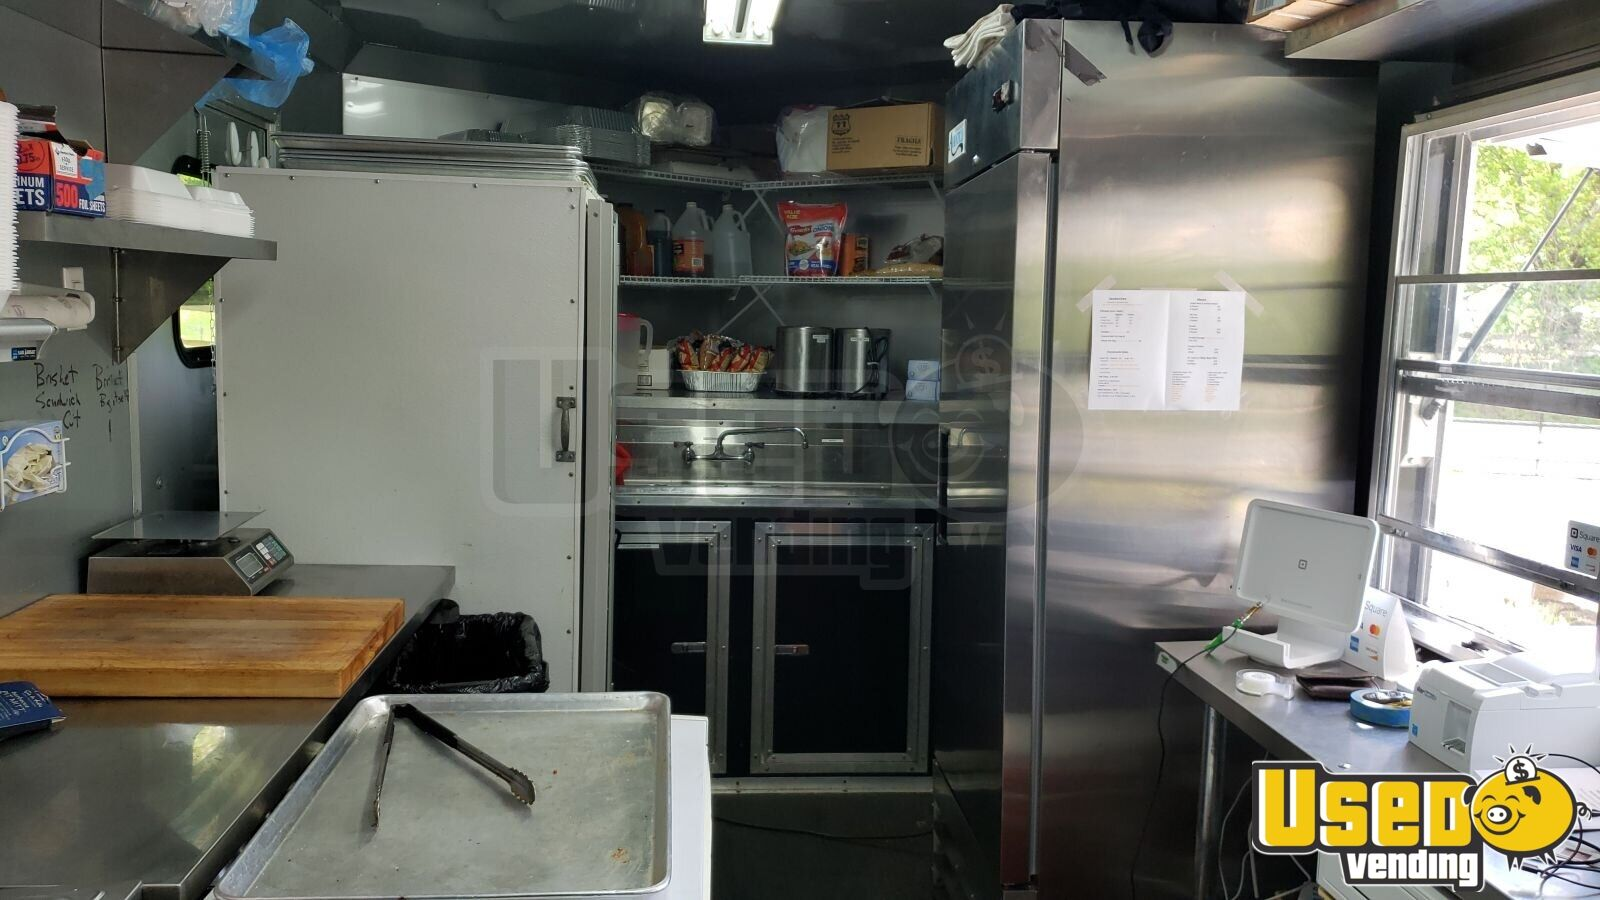 2016 2016 Freedom Trailer Barbecue Food Trailer Refrigerator Virginia for Sale - 7